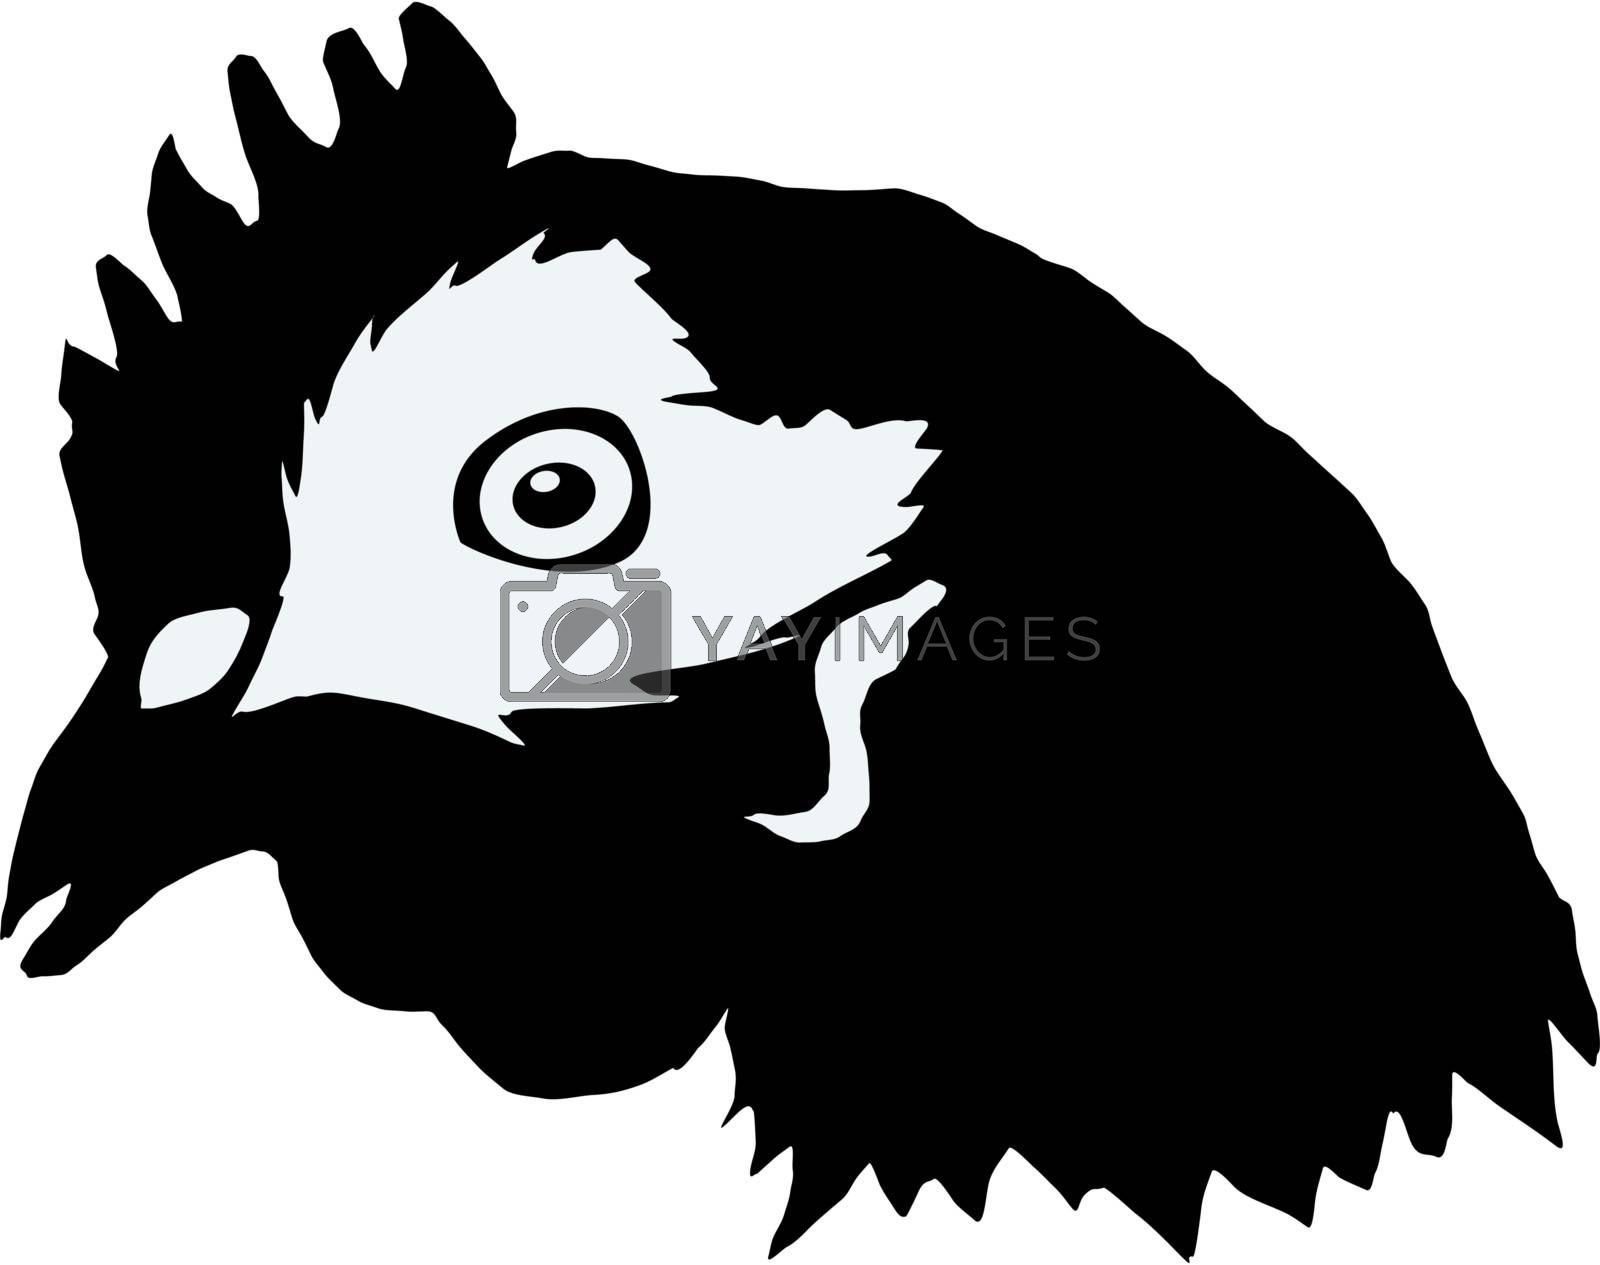 Illustration in style of black silhouette of hen